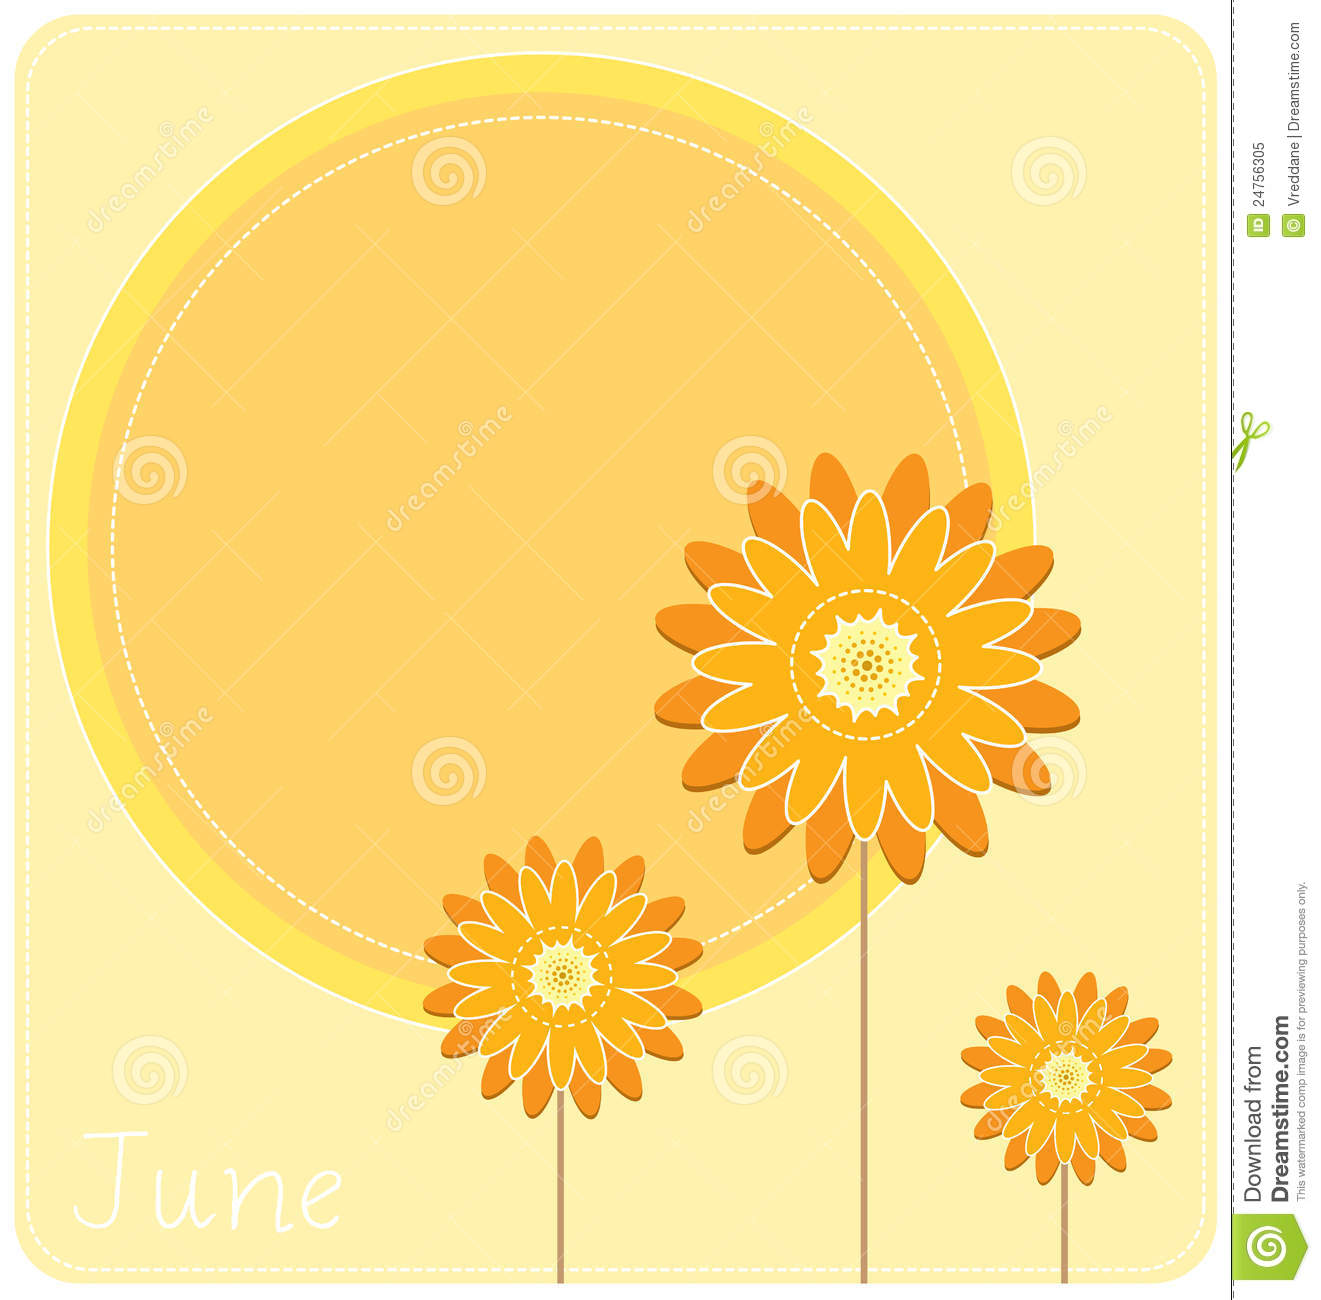 Calendar April Vector : June background royalty free stock photo image